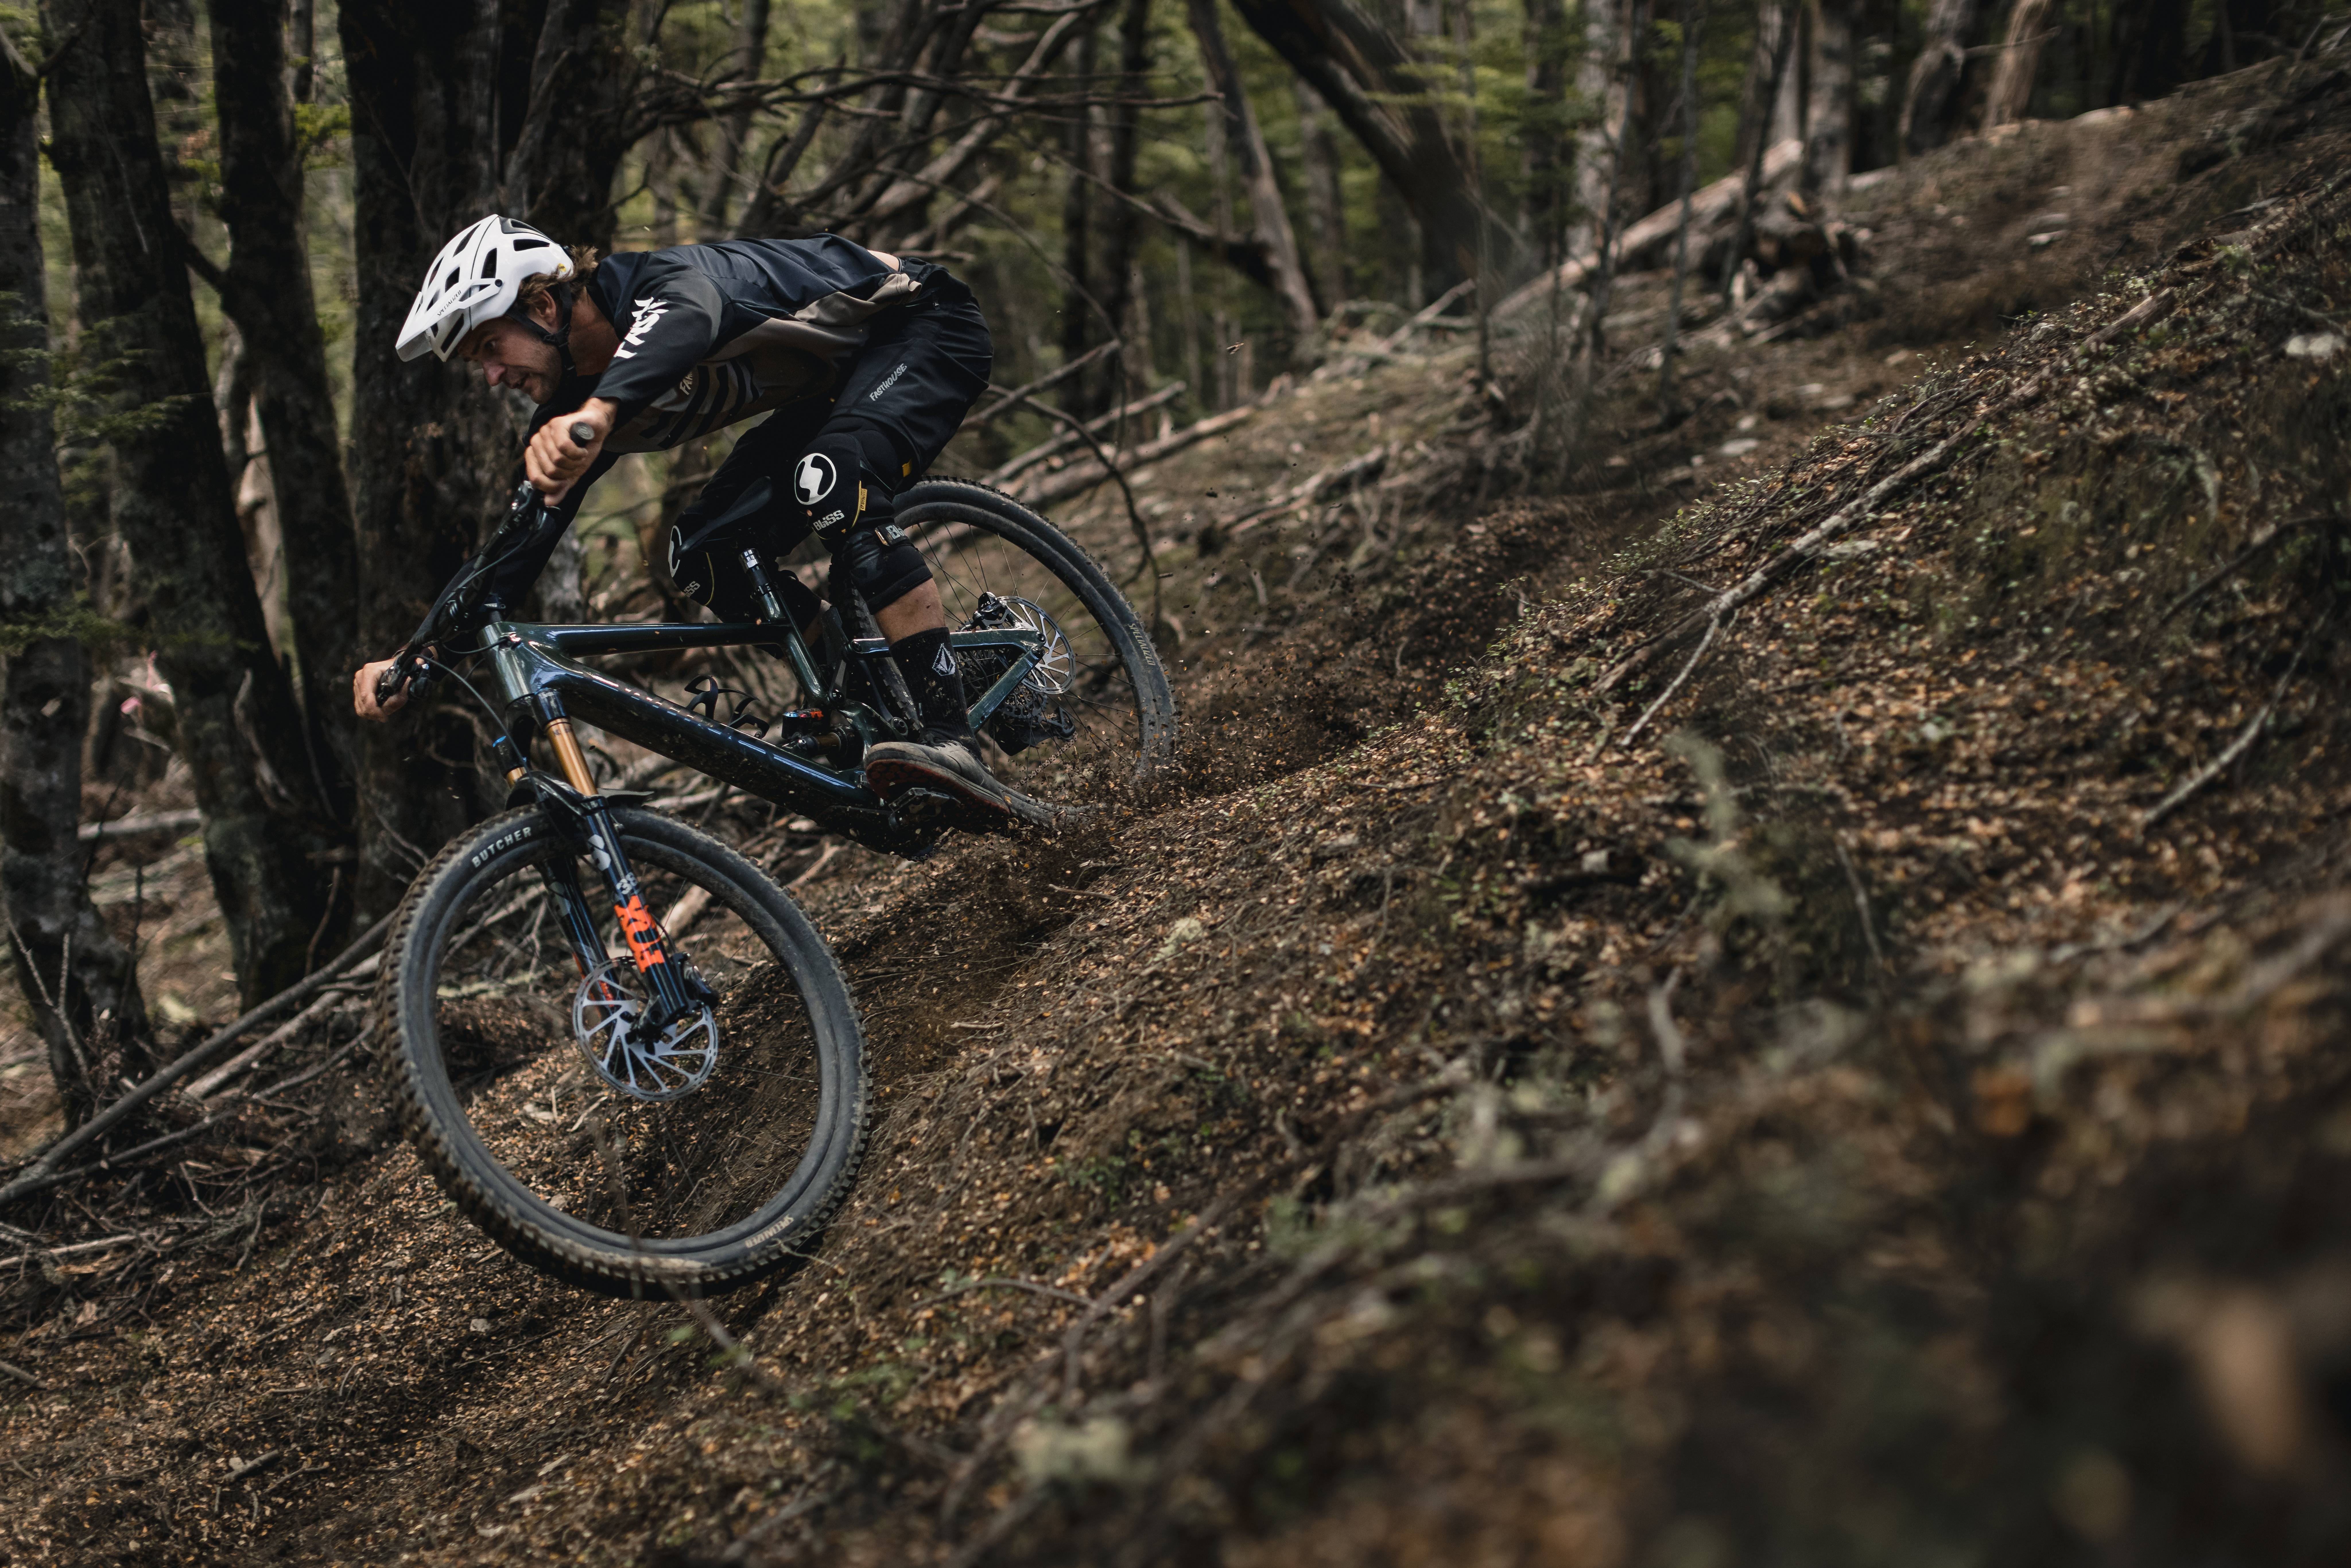 Specialized reckons that the Kenevo SL is the lightest and most capable e-MTB around